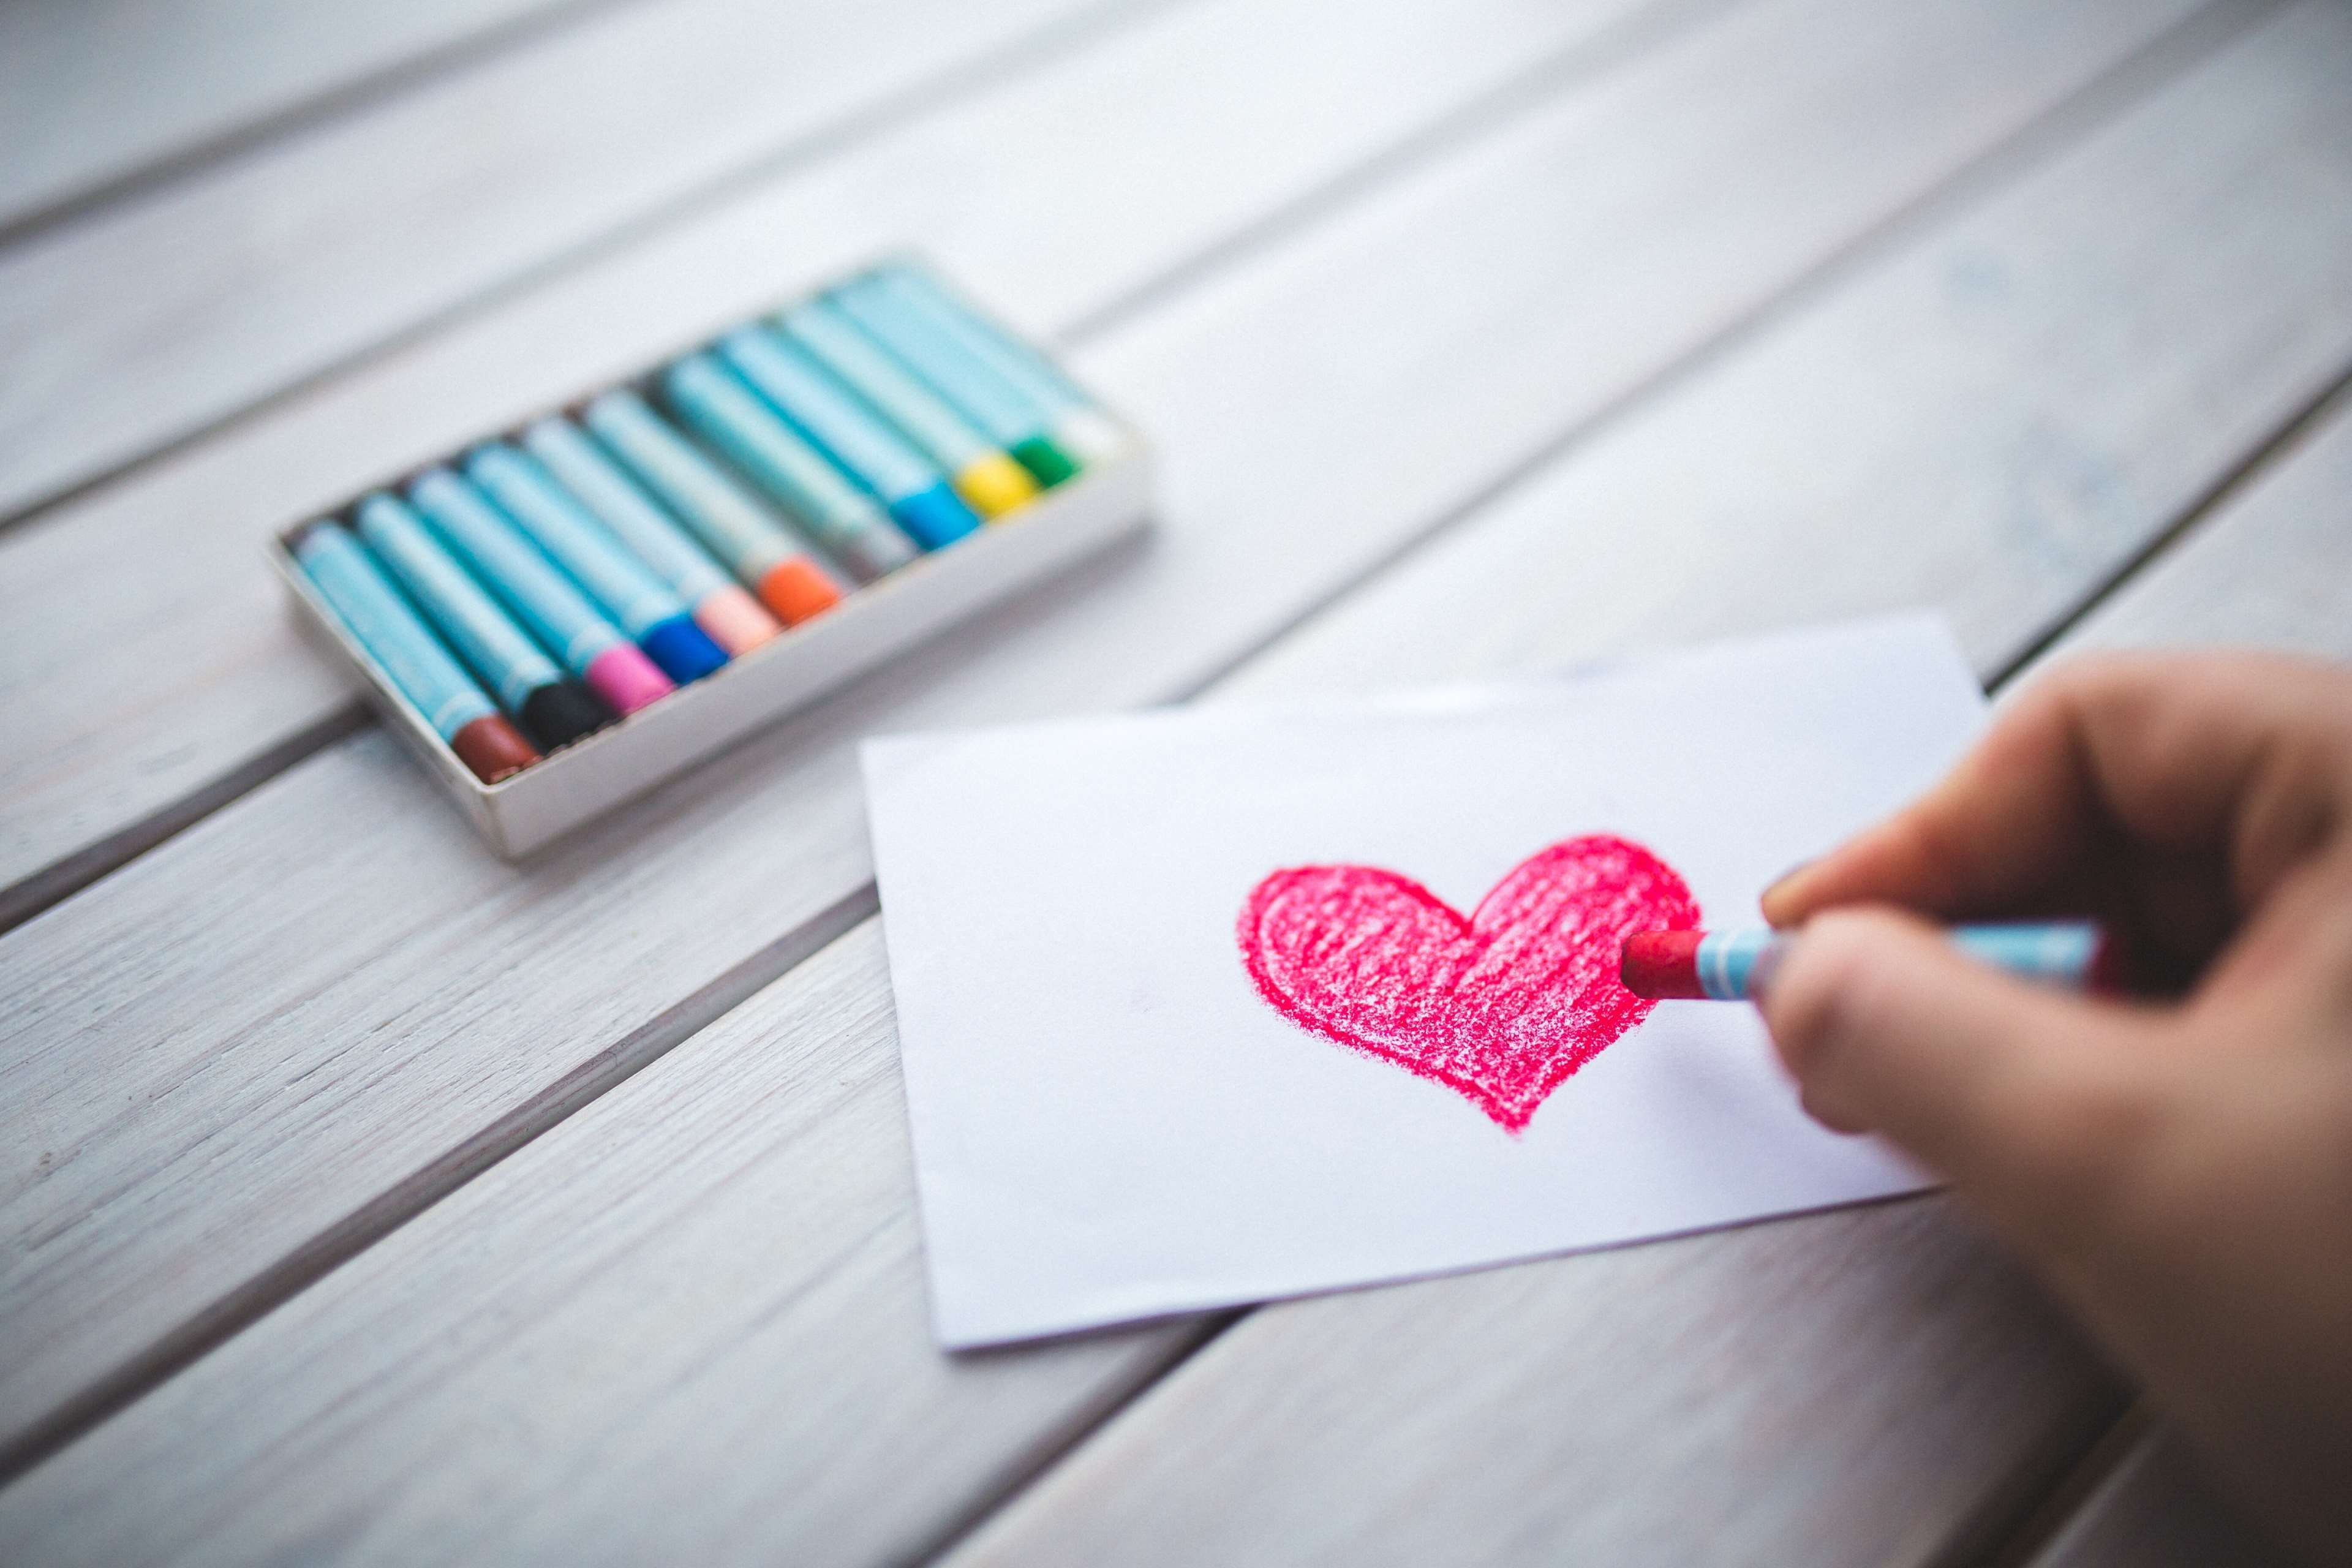 #art #art materials #card #color #crayon #drawing #hand #heart #letter #love #pastel #romance #romantic #valentines day